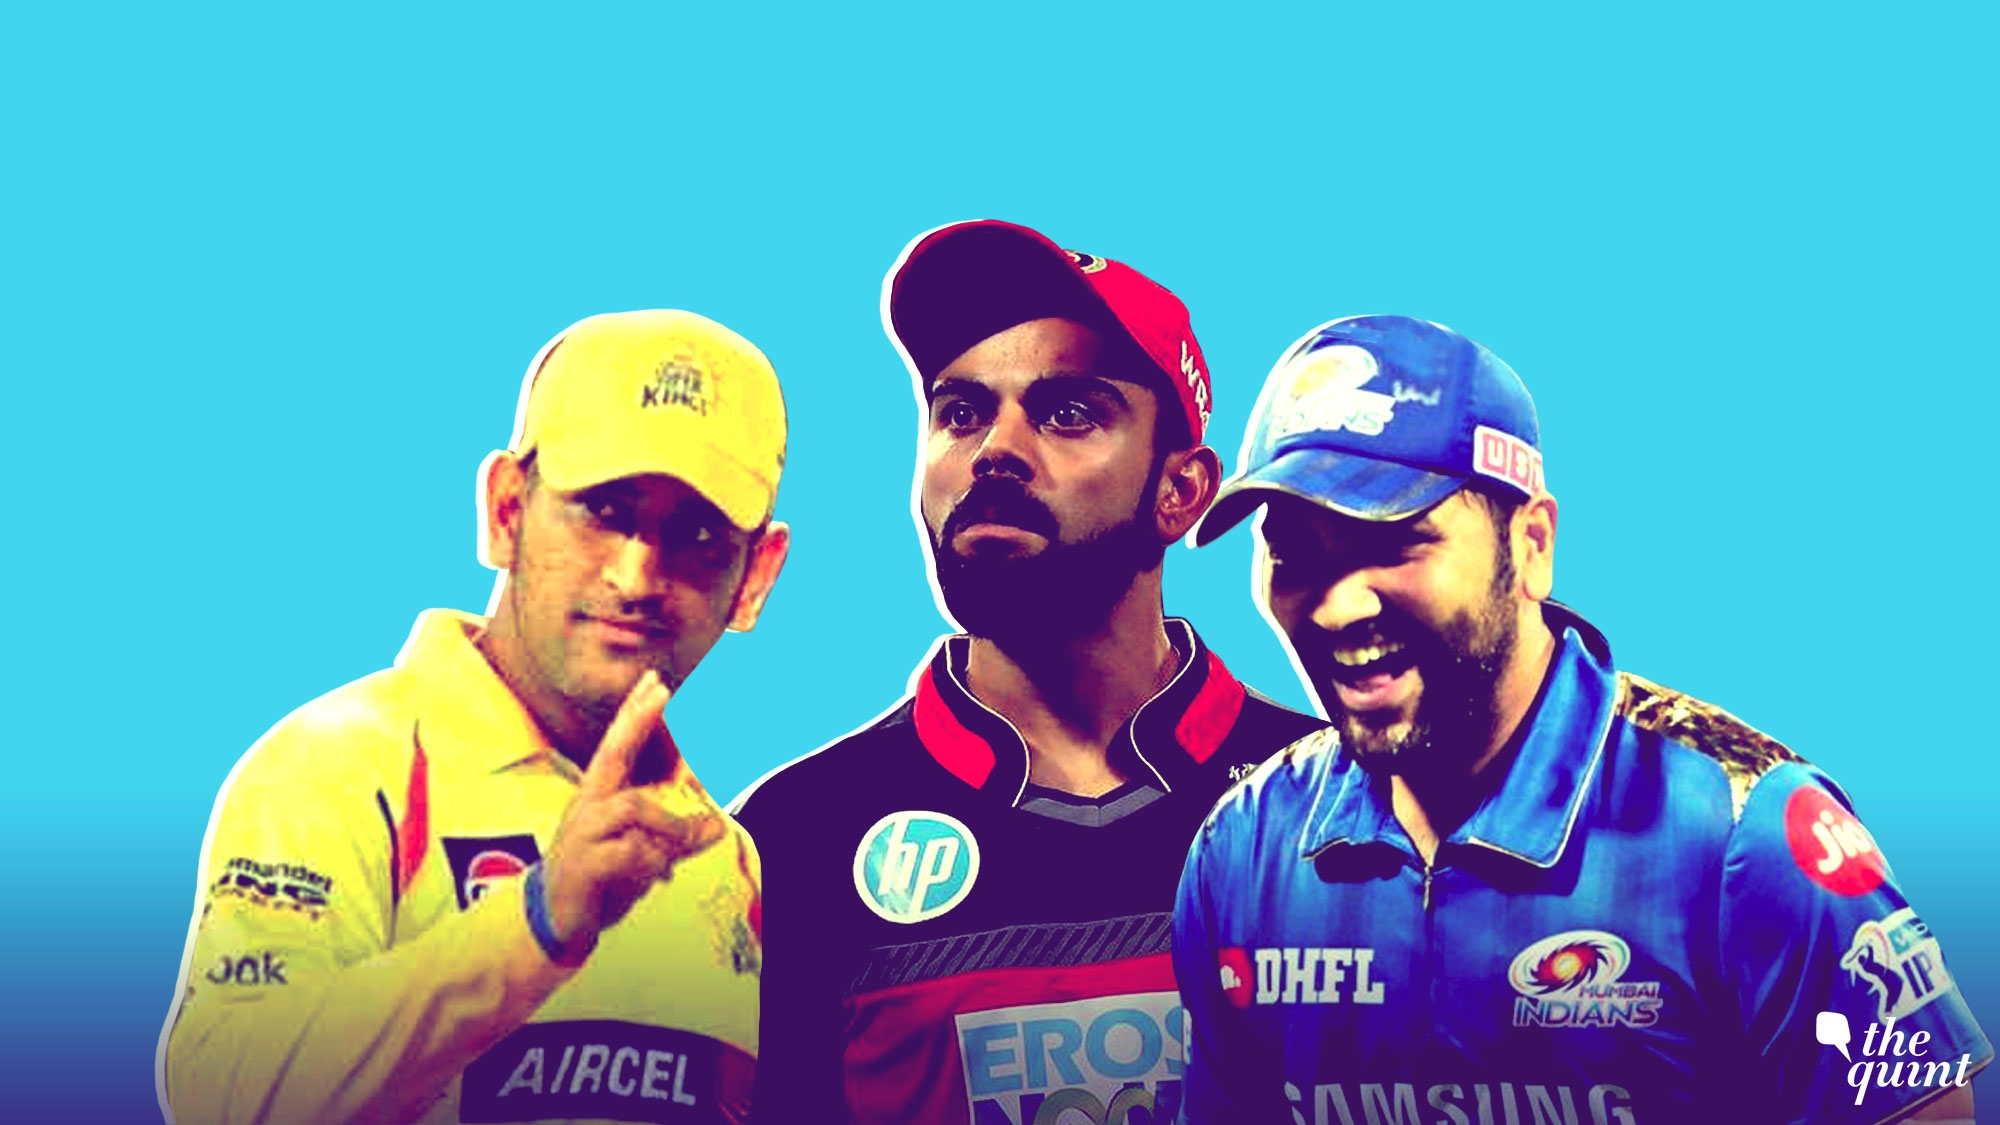 India's WC Squad's IPL So Far: Hits, Misses & Big Disappointments